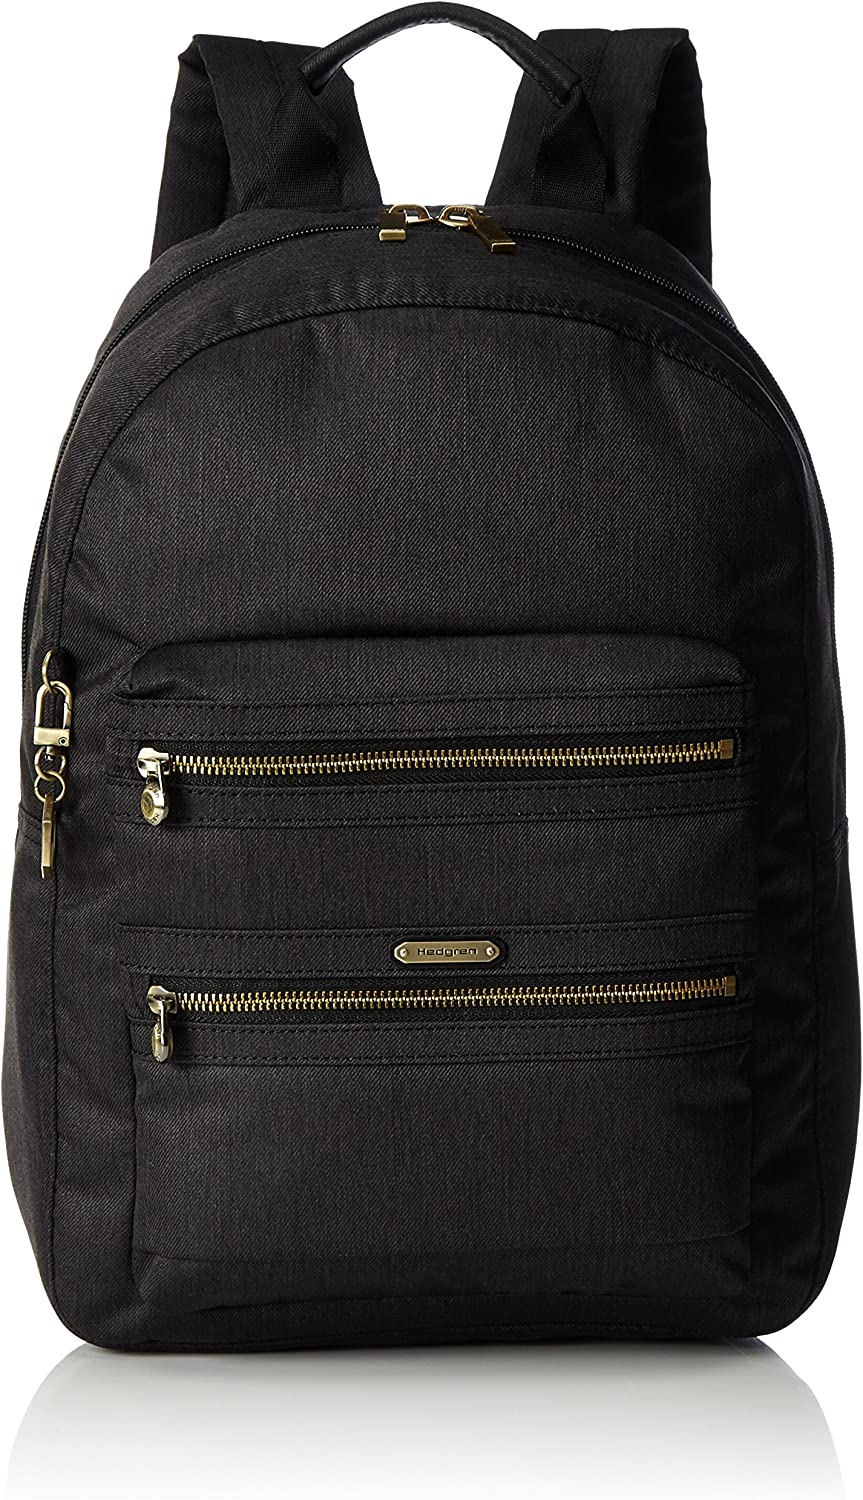 Hedgren Galia Backpack  Exclusive